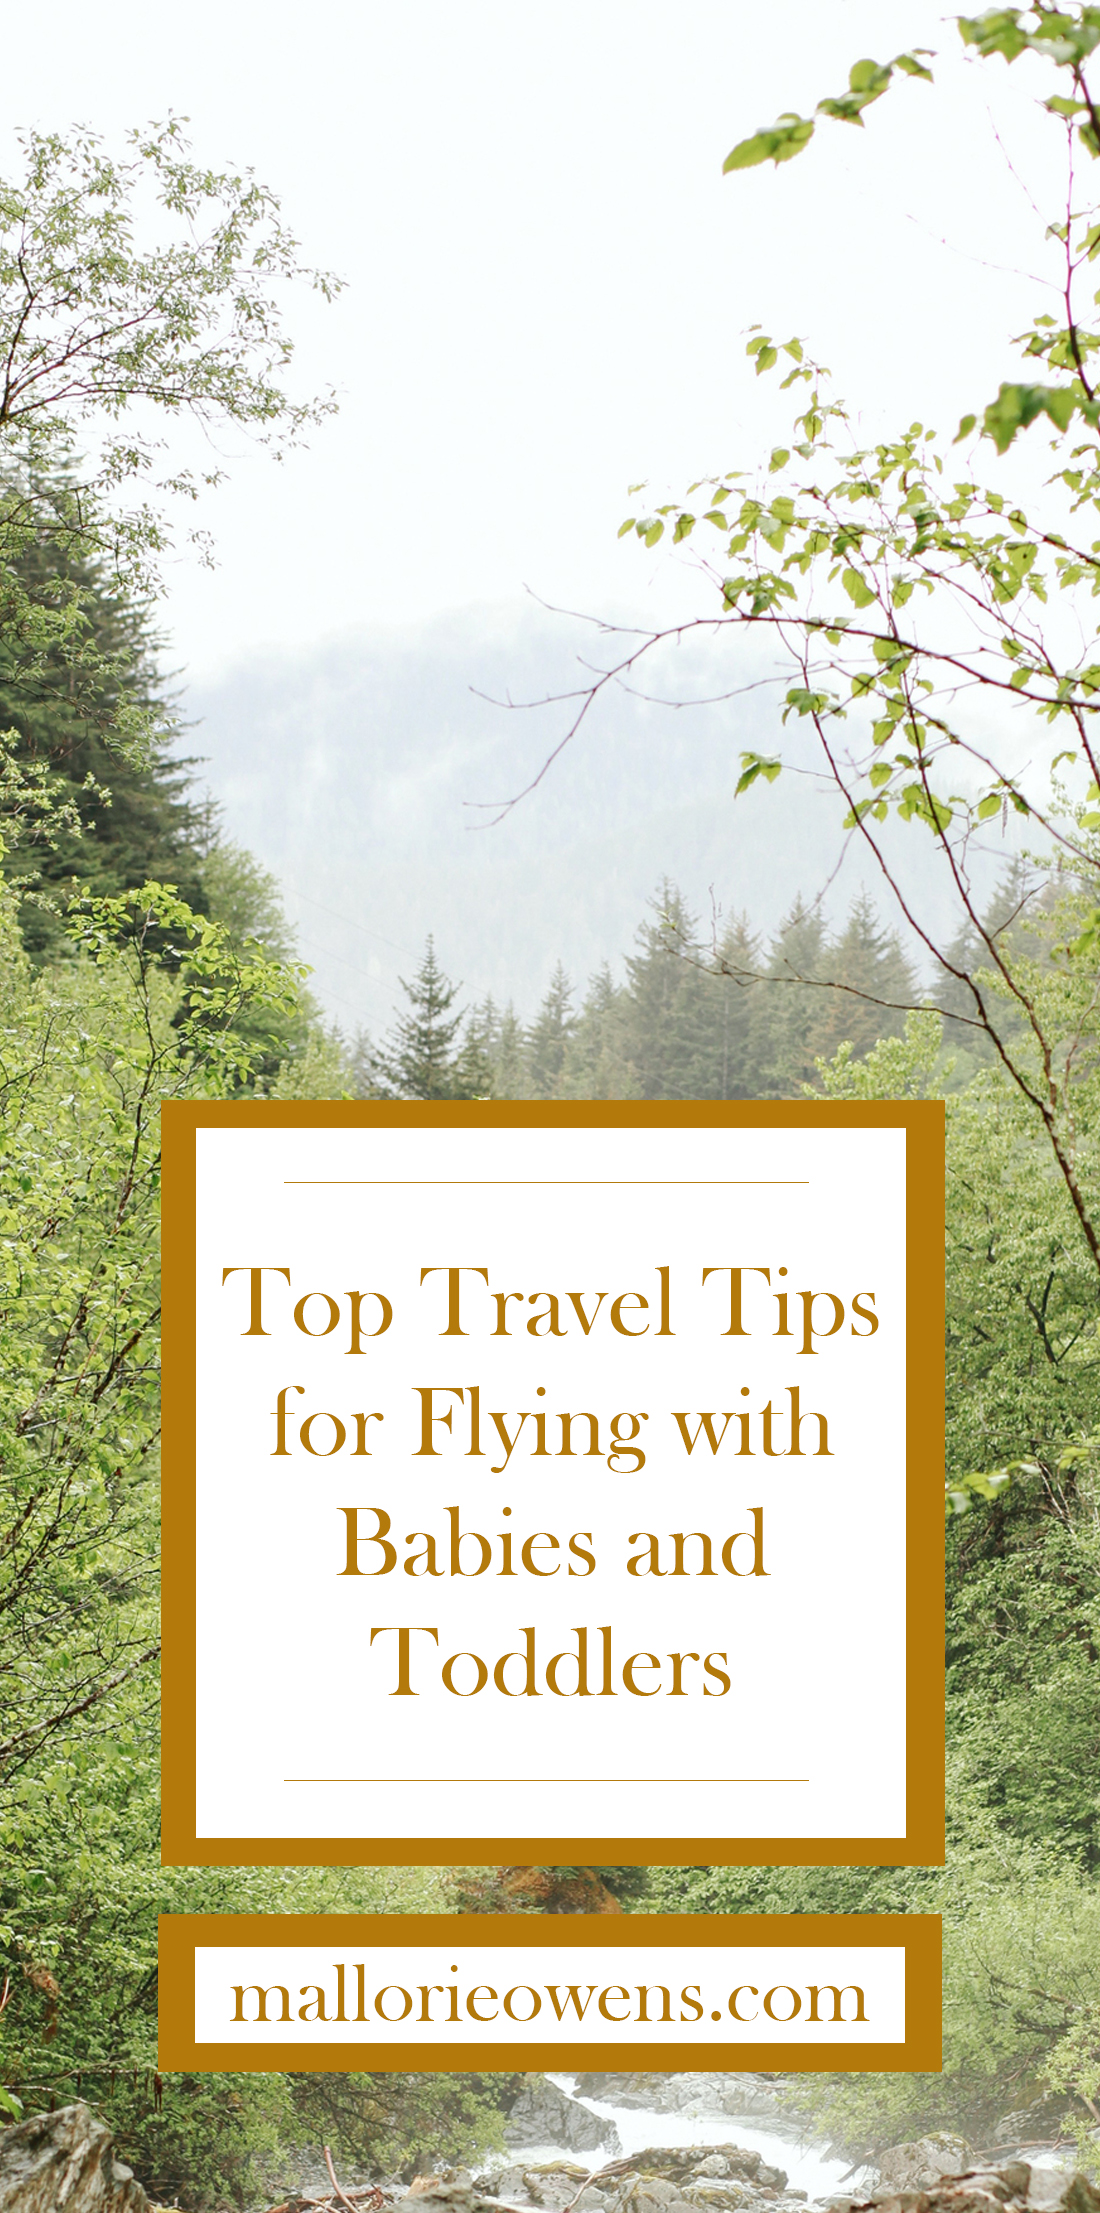 Top Travel Tips and Packing List for Babies and Toddlers